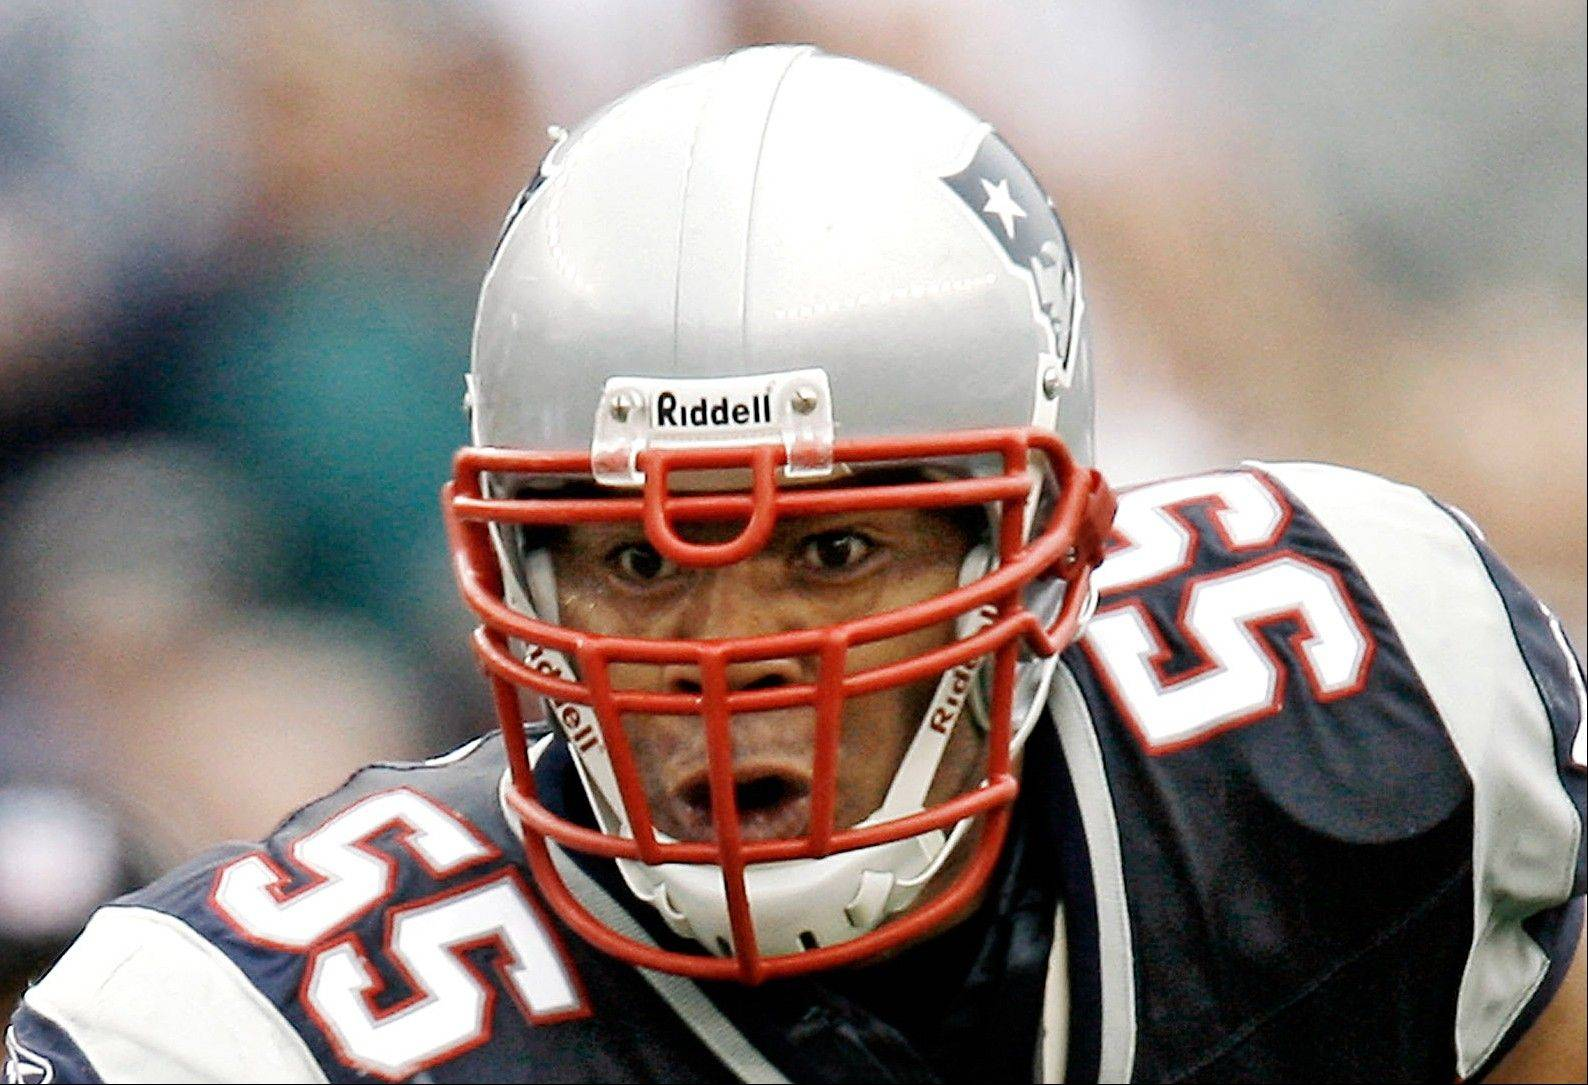 The family of Junior Seau has sued the NFL, claiming the former linebacker�s suicide was the result of brain disease caused by violent hits he sustained while playing football.